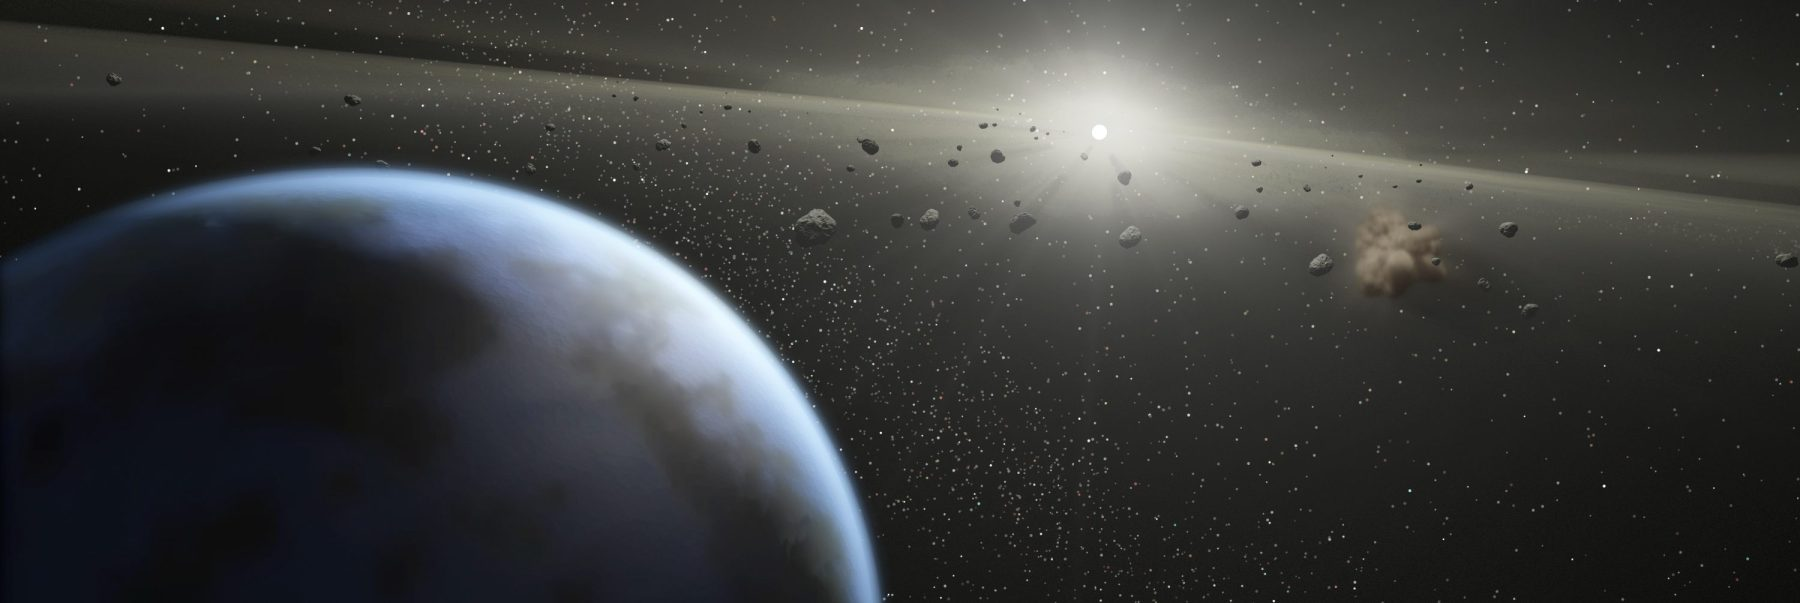 An artists impression showing an asteroid belt around a star similar in size to the sun.  PHOTOGRAPH BY NASA / Barcroft Media /Barcoft Media via Getty Images